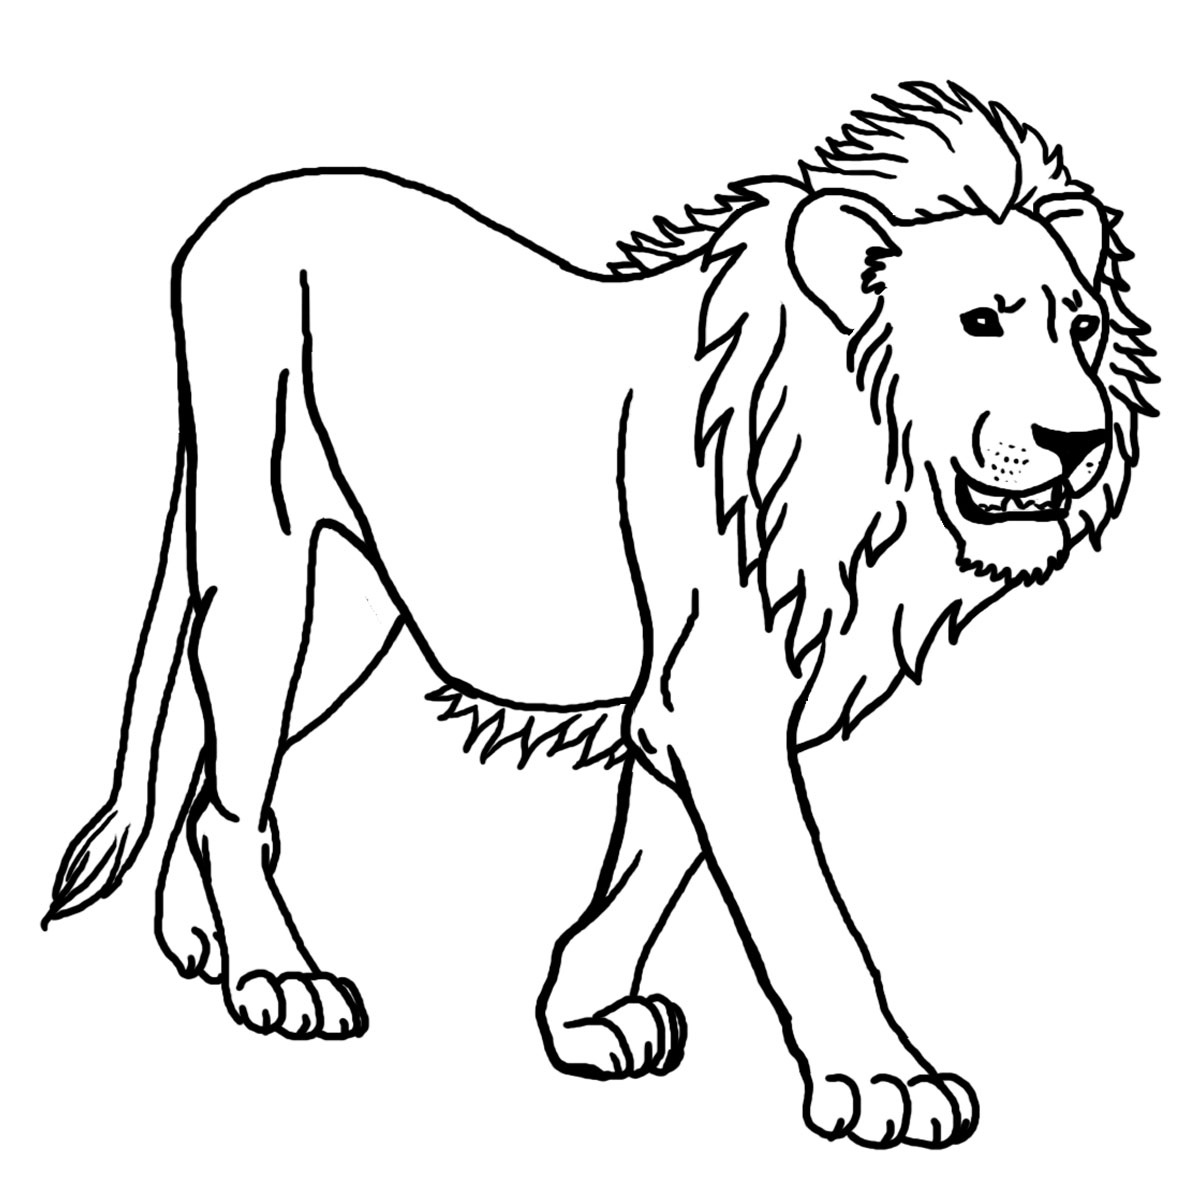 Lion Free To Color For Children - Lion Kids Coloring Pages - Free Printable Picture Of A Lion